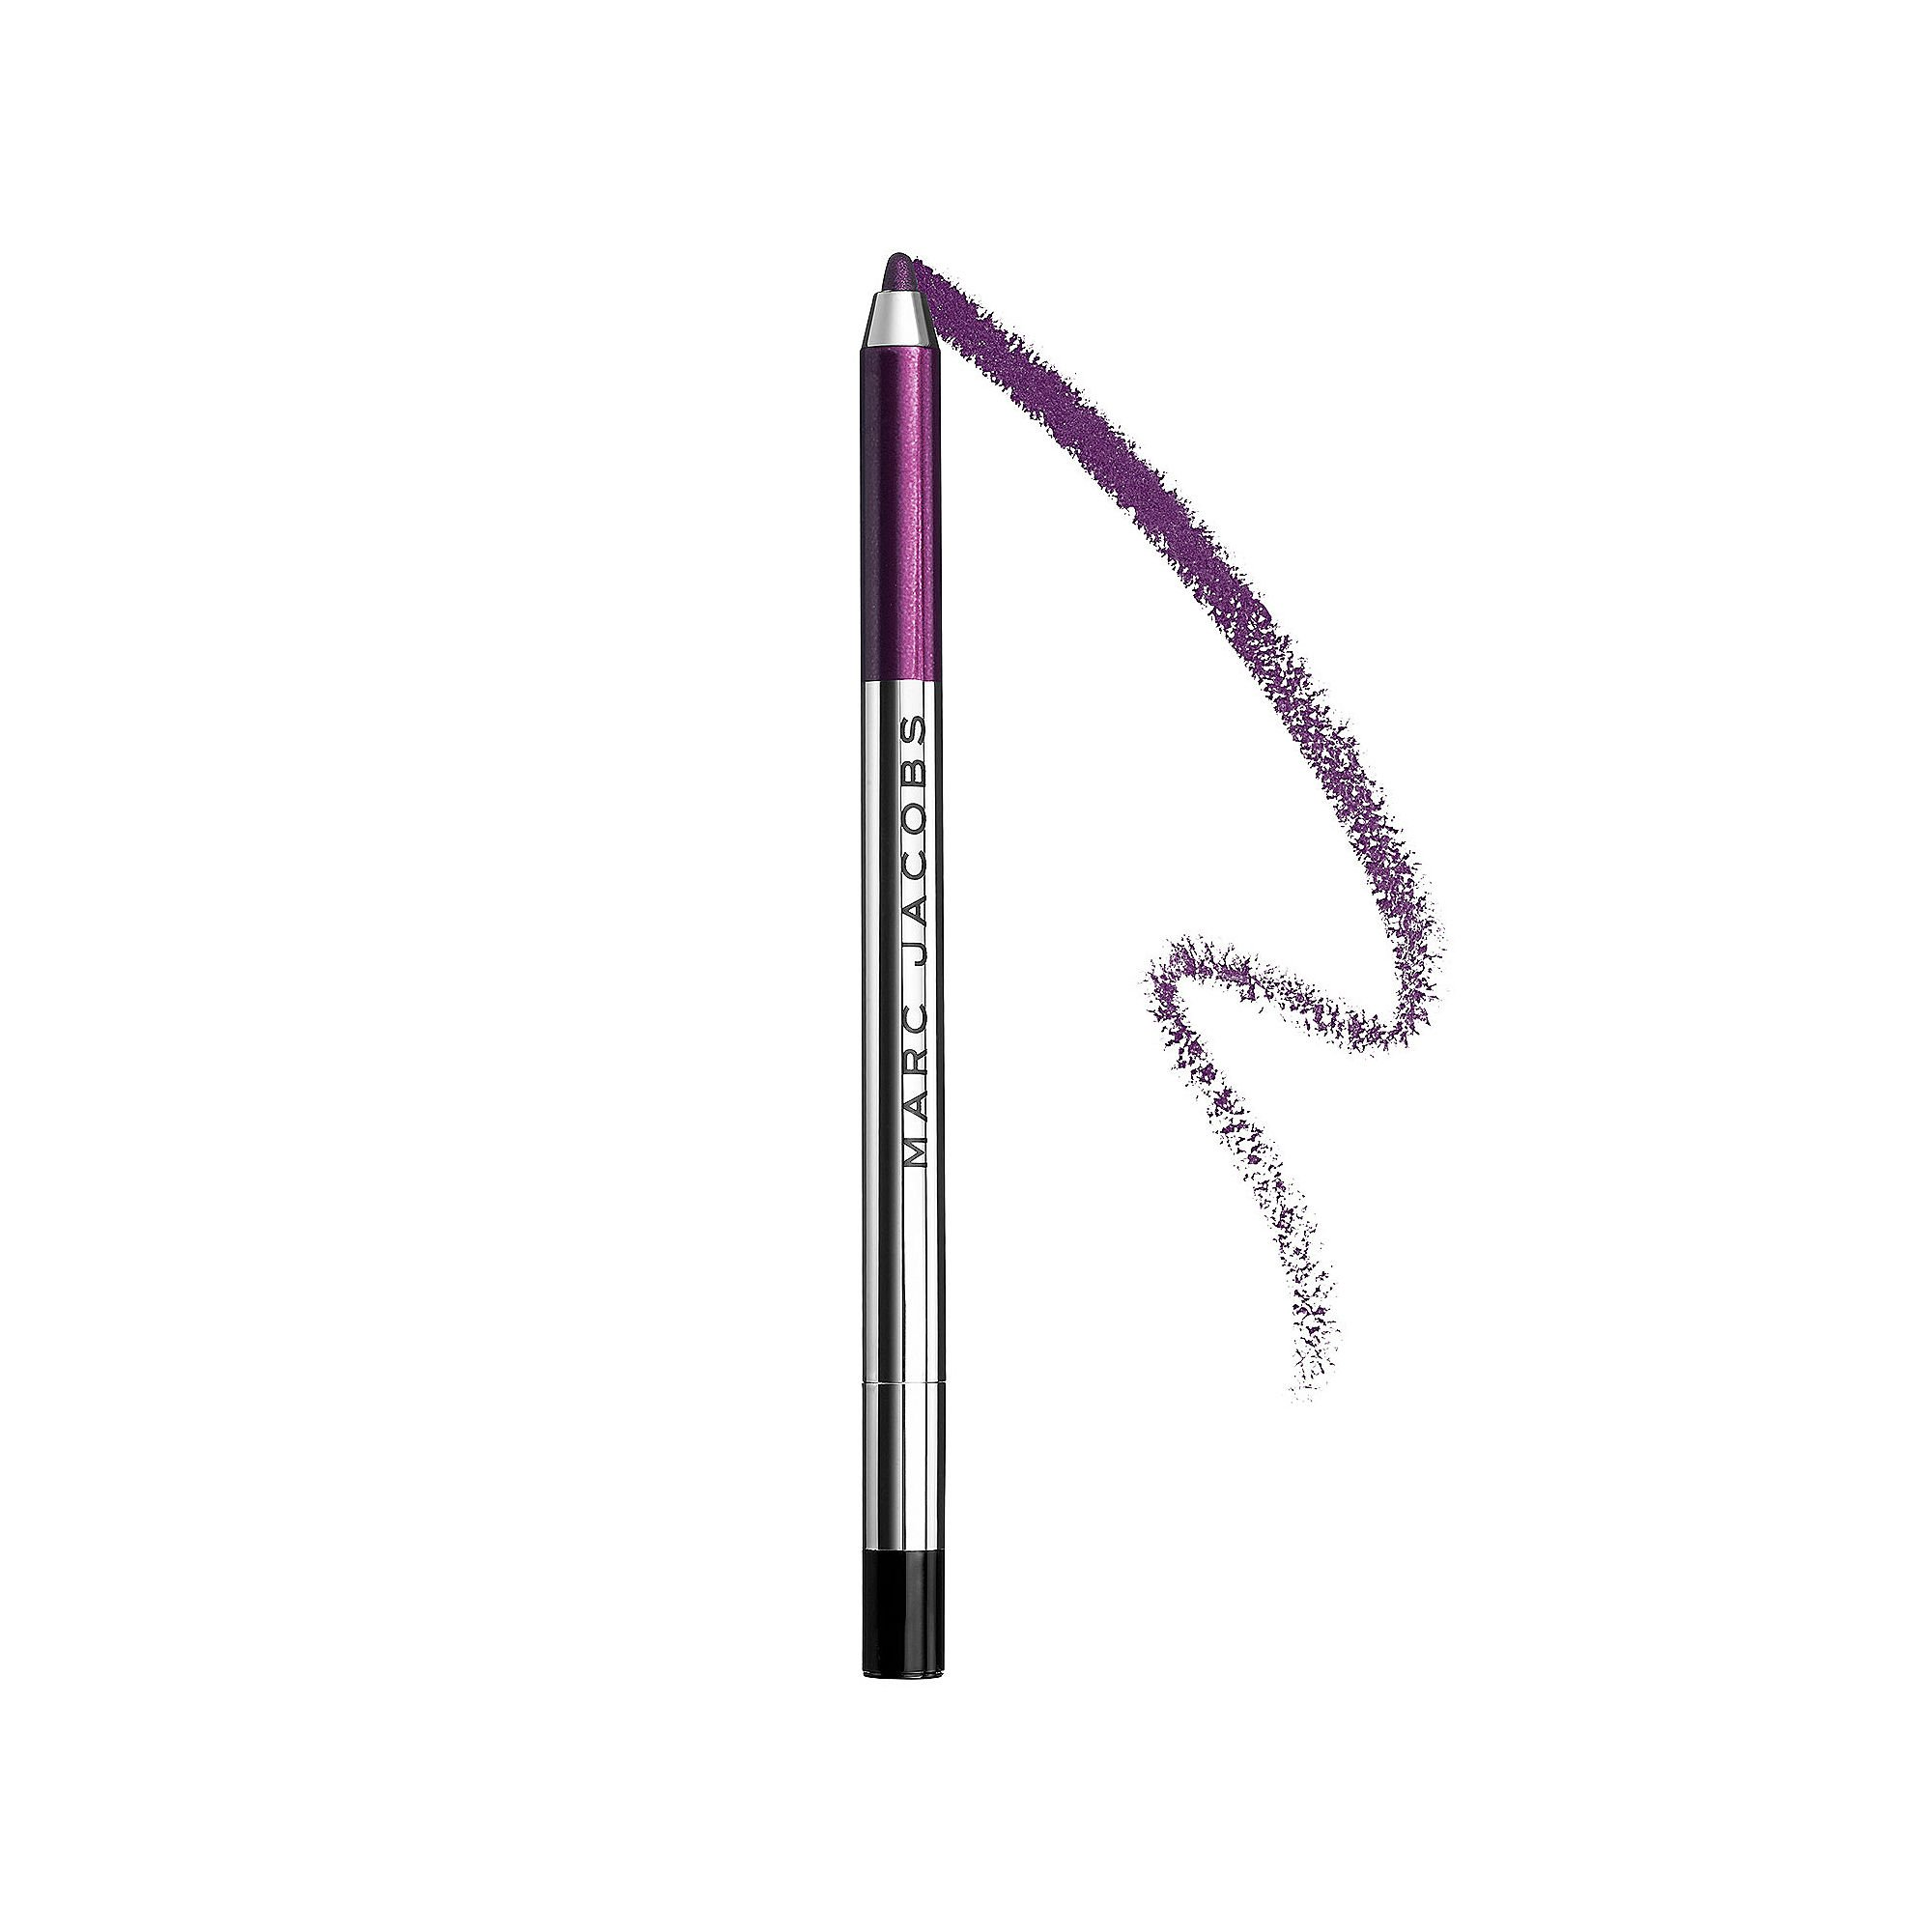 Marc Jacobs Highliner Gel Eye Crayon Plumage #60, Full Size, NEW, SEALED, Professional Makeup